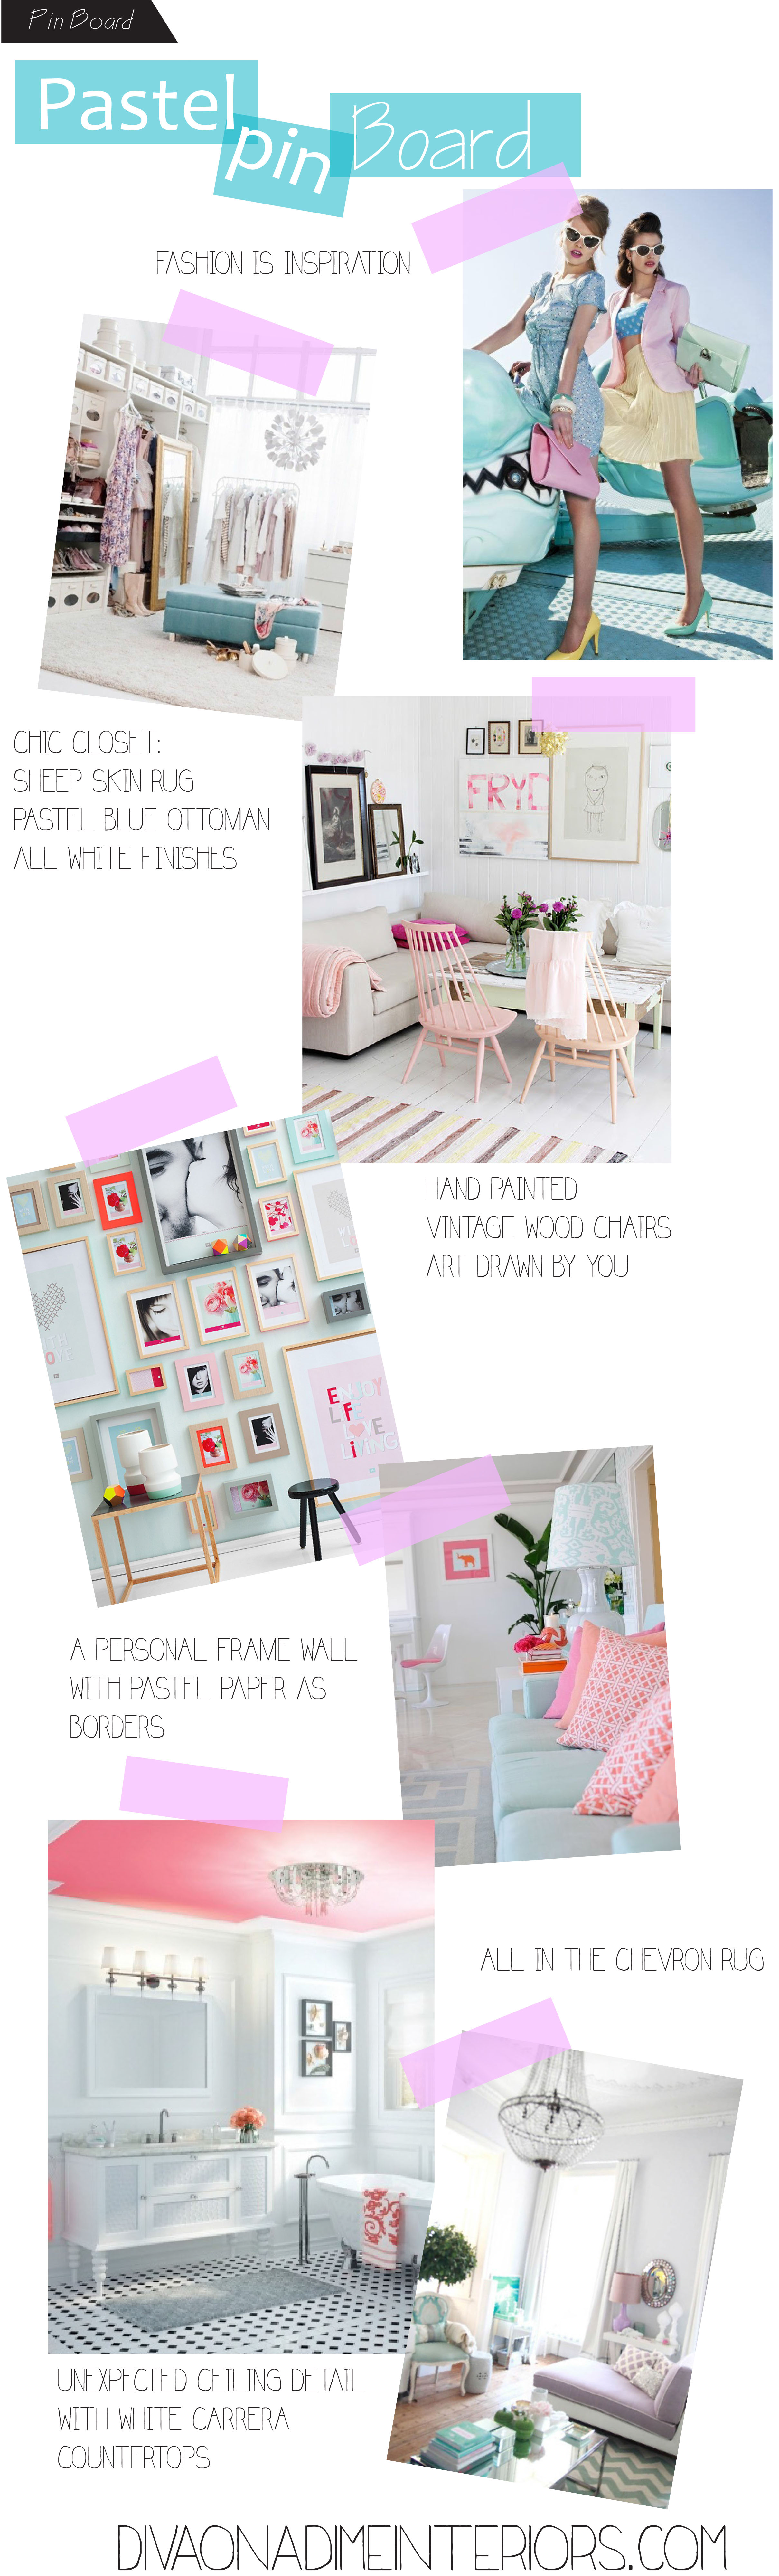 Pastels Pin Board